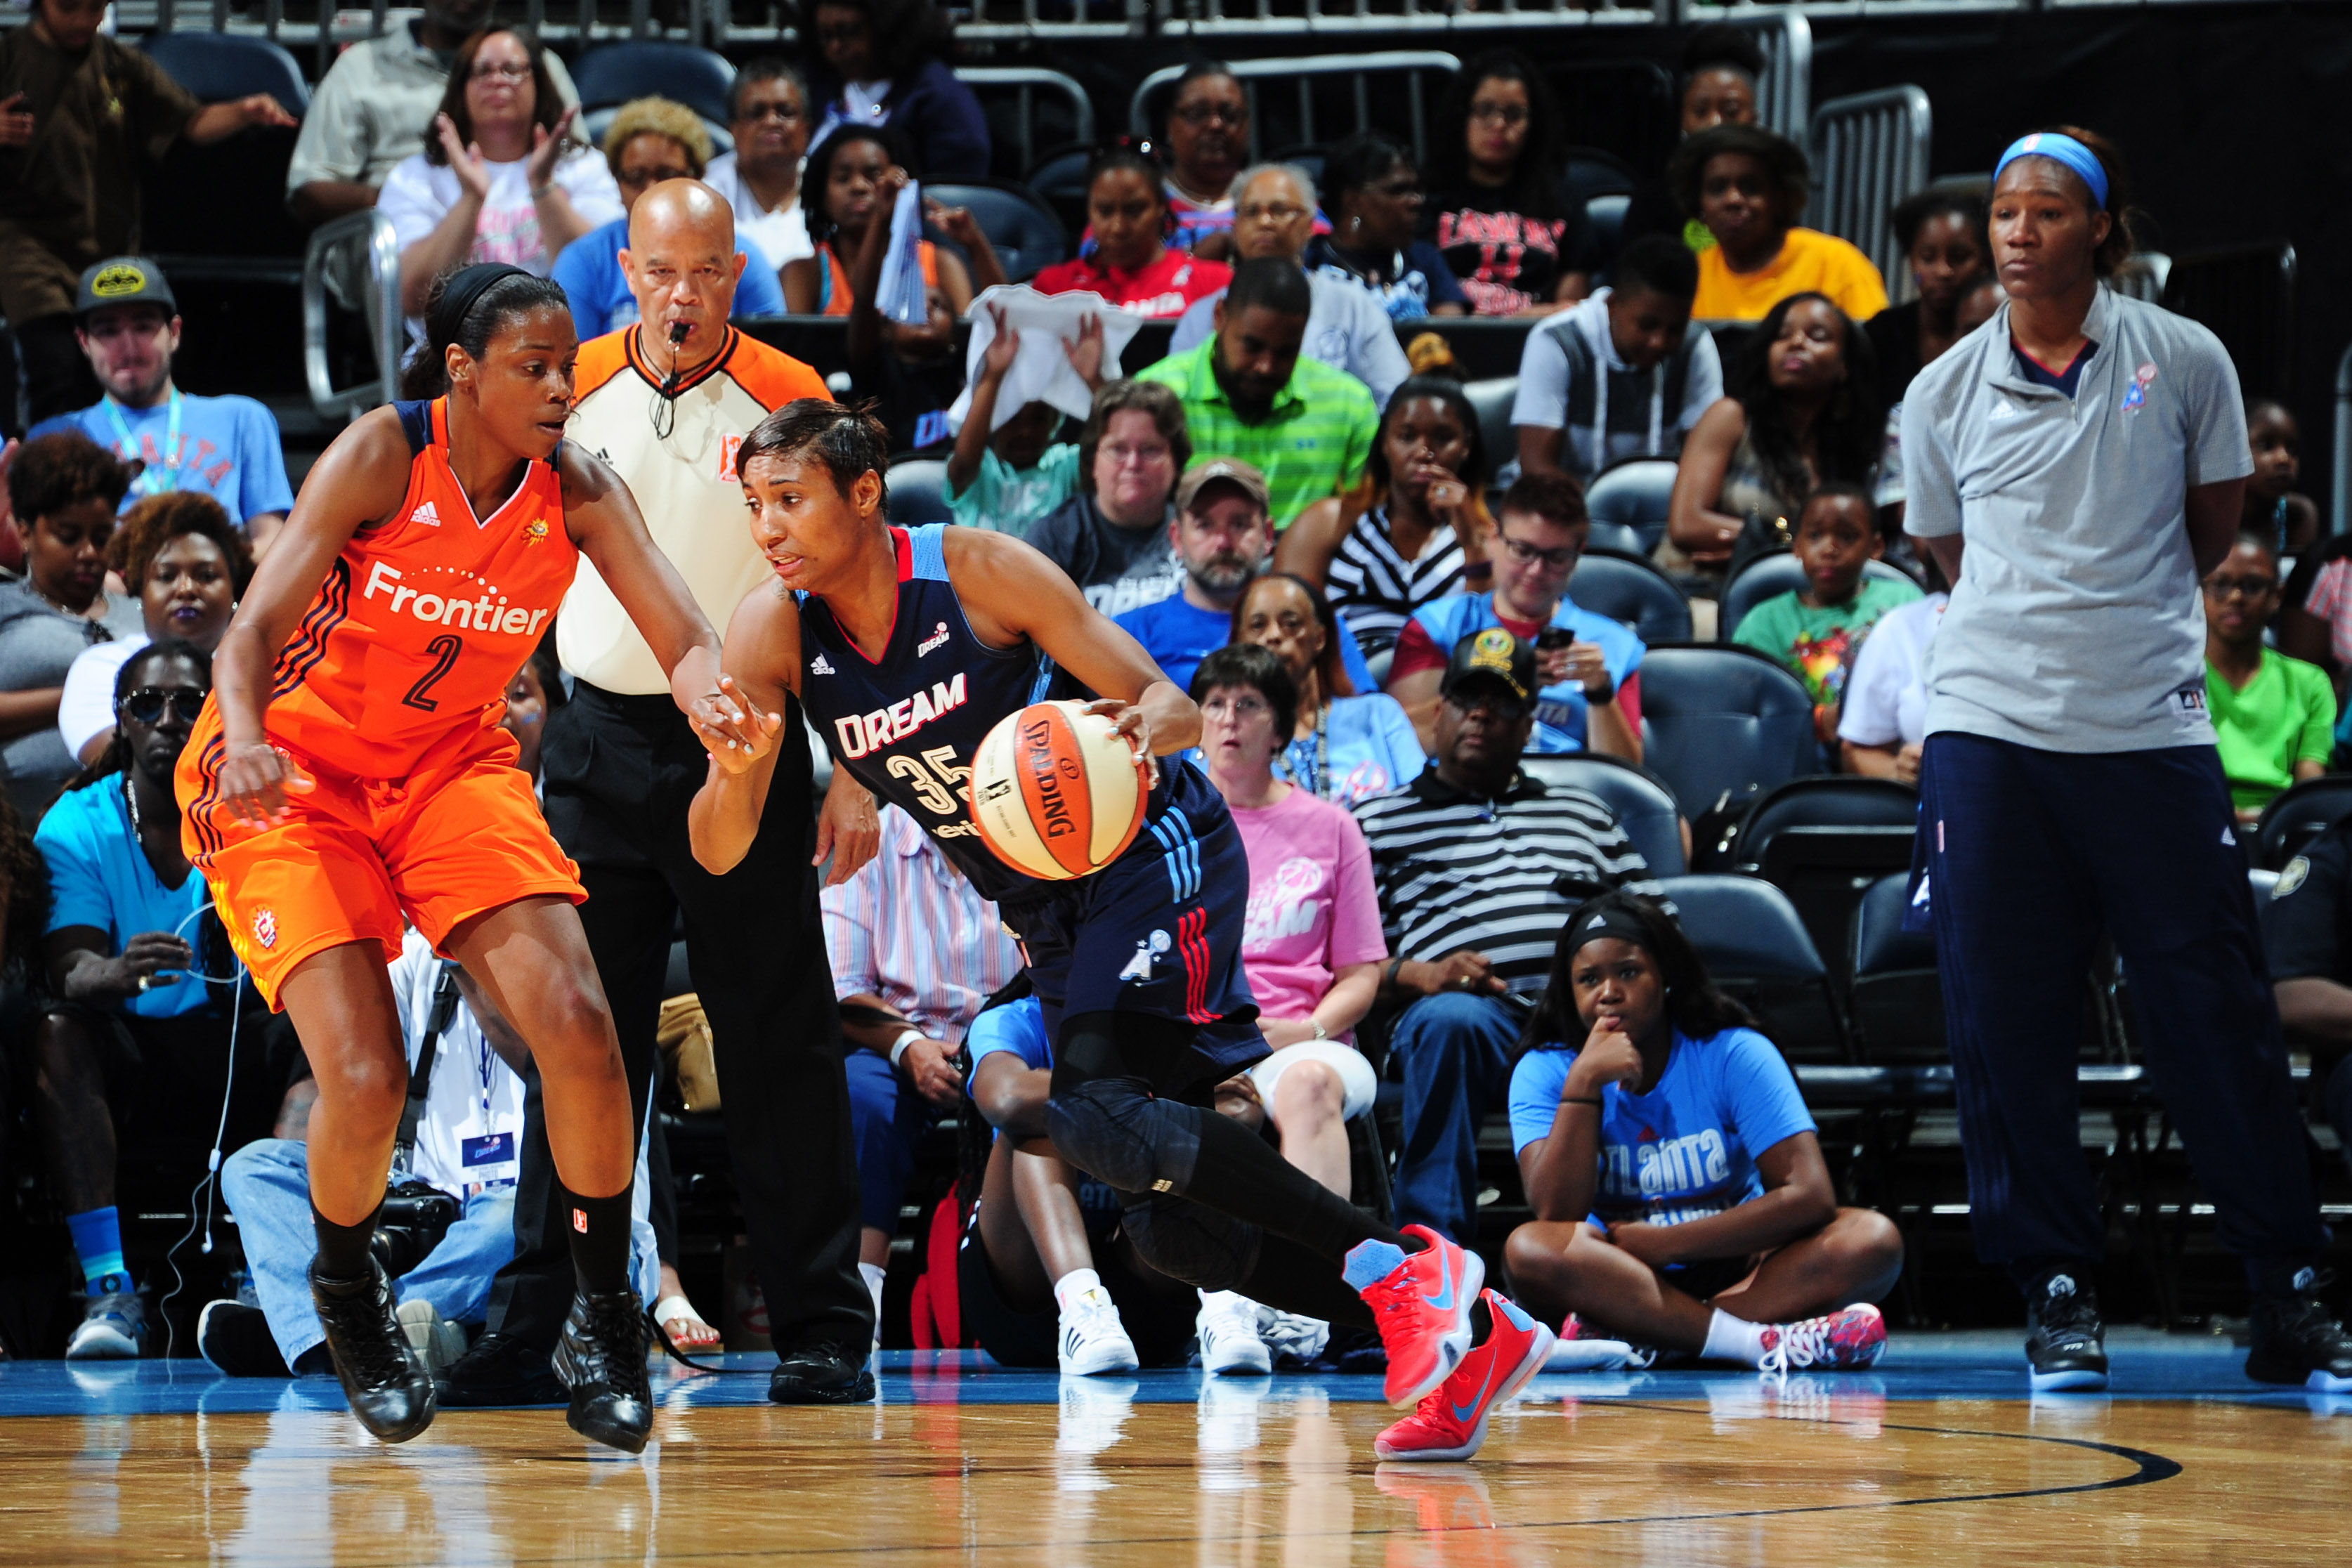 ATLANTA, GA - JUNE 12: Angel McCoughtry #35 of the Atlanta Dream drives to the basket against Camille Little #2 of the Connecticut Sun during the game on June 12, 2016 at Philips Arena in Atlanta, Georgia. NOTE TO USER: User expressly acknowledges and agrees that, by downloading and or using this Photograph, user is consenting to the terms and conditions of the Getty Images License Agreement. Mandatory Copyright Notice: Copyright 2016 NBAE (Photo by Scott Cunningham/NBAE via Getty Images)